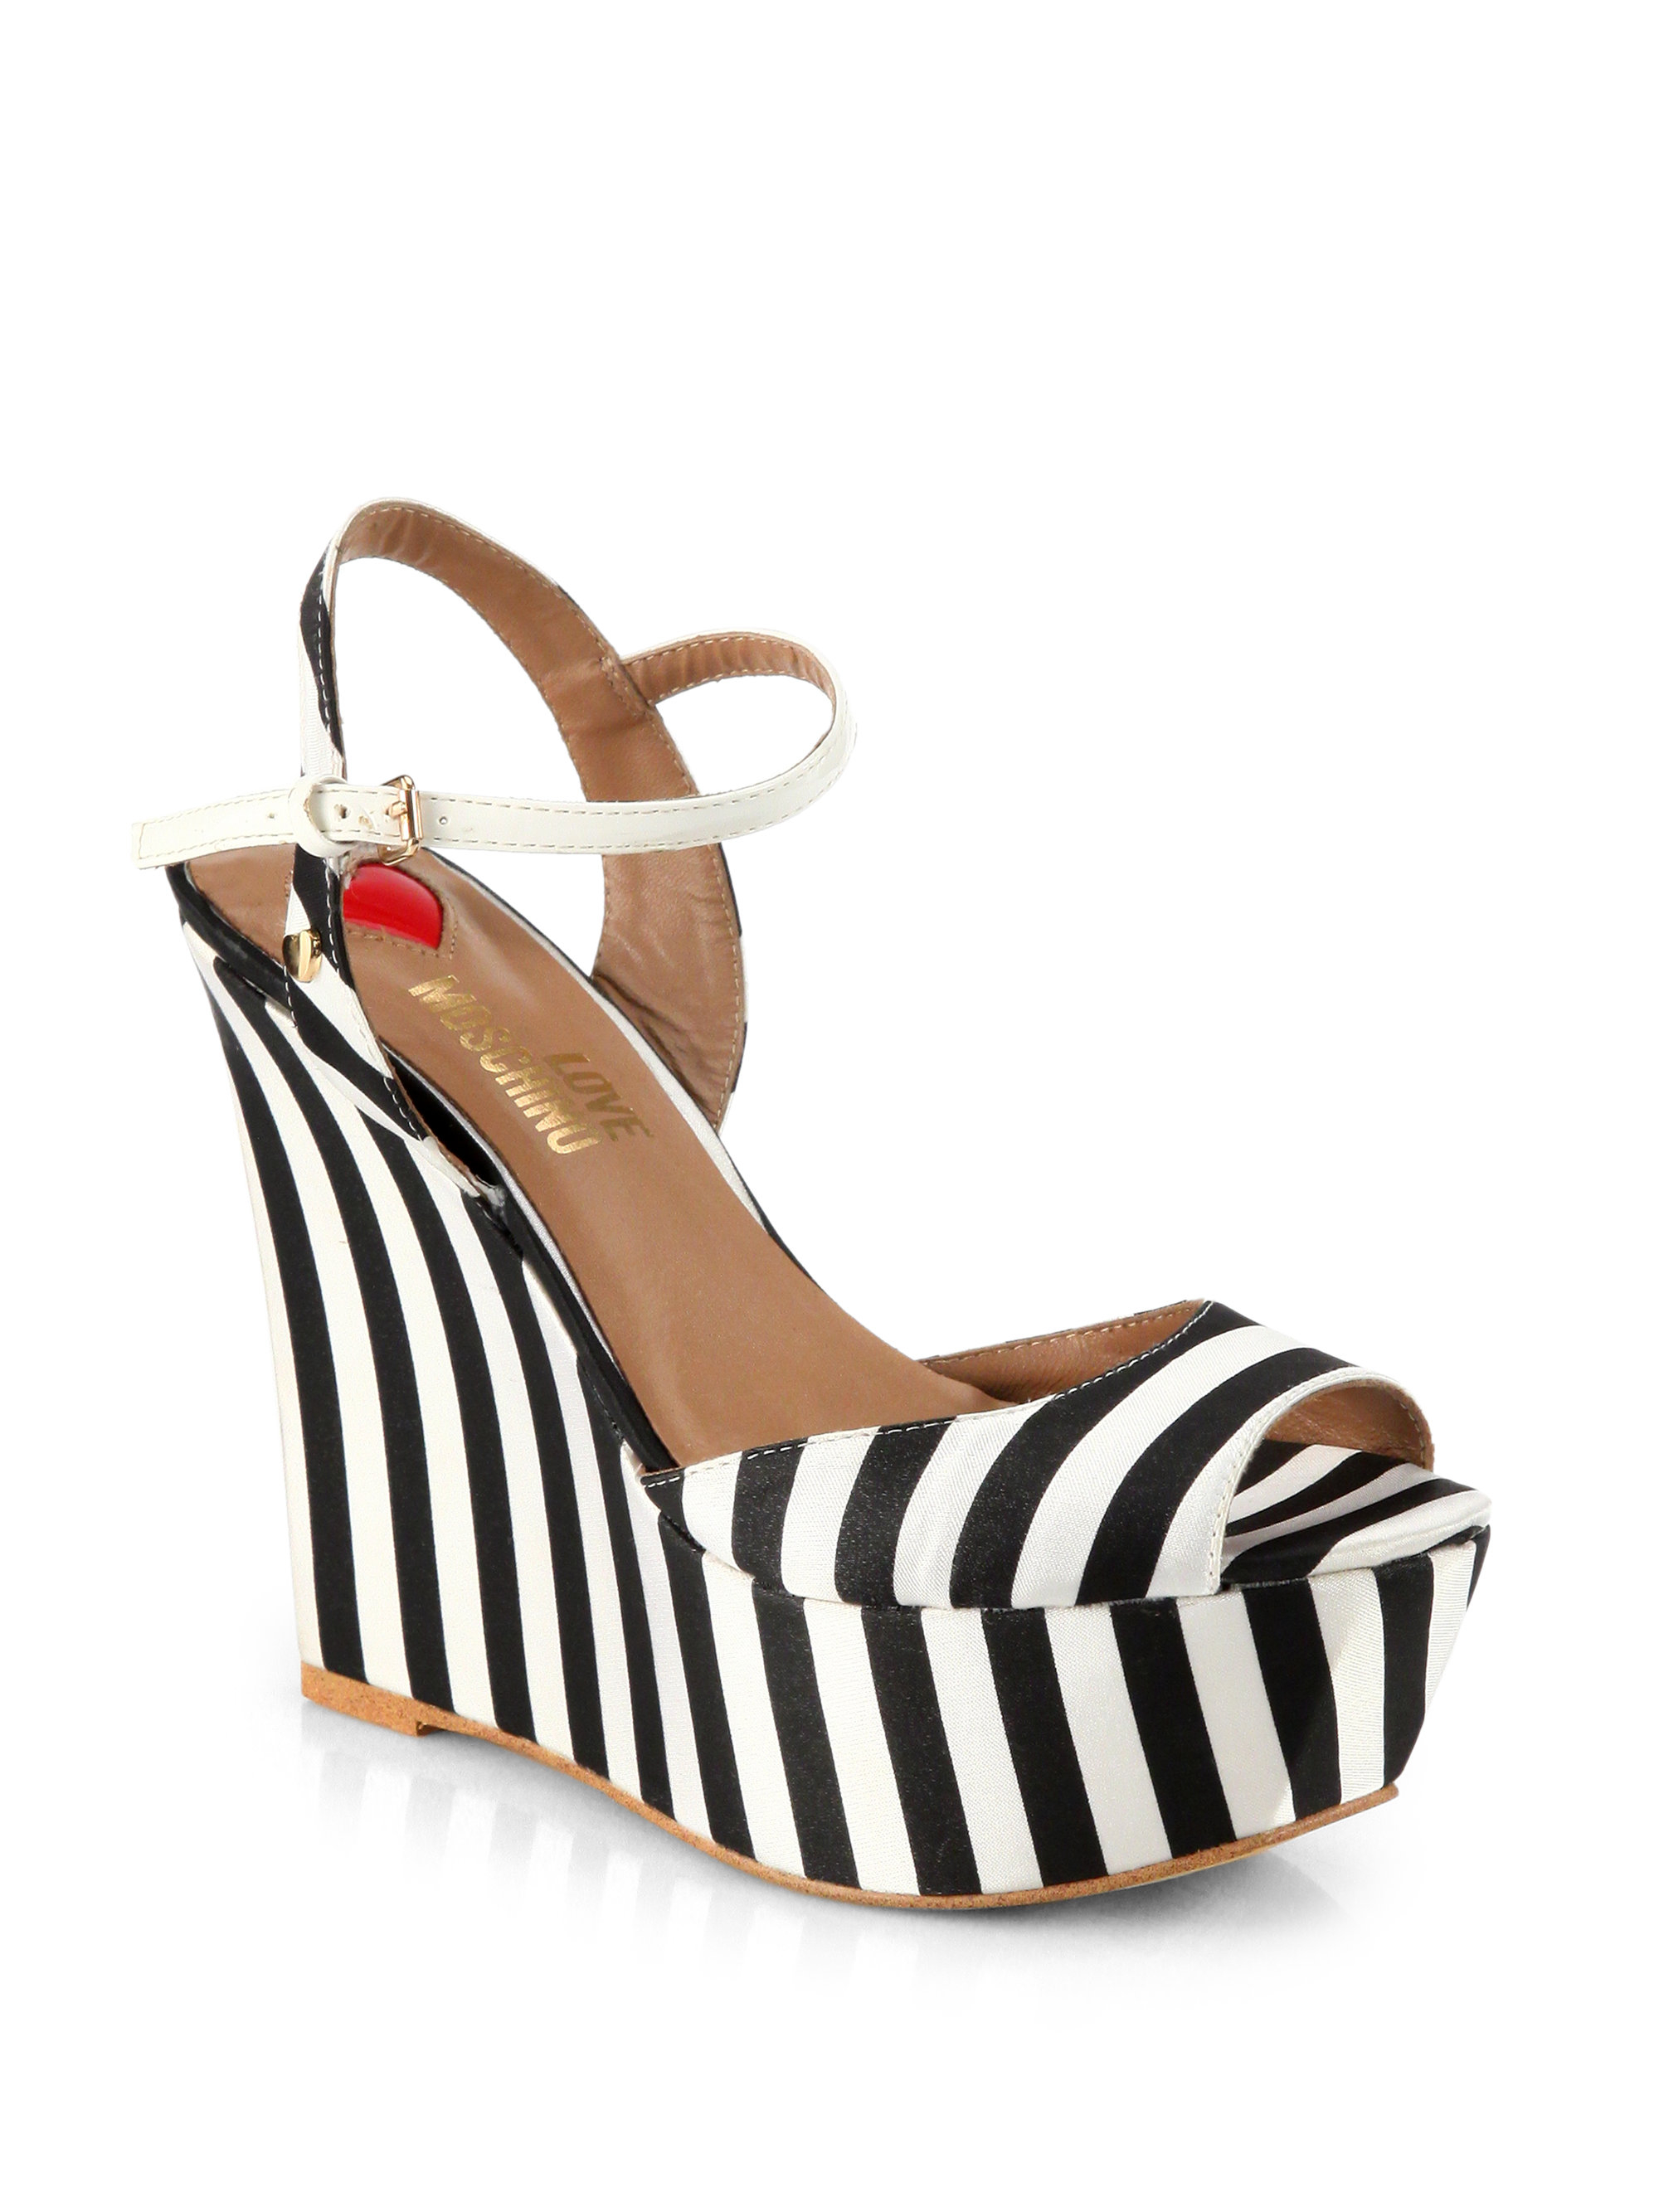 7dd6eb7015d Lyst - Love Moschino Striped Satin Platform Wedge Sandals in Black